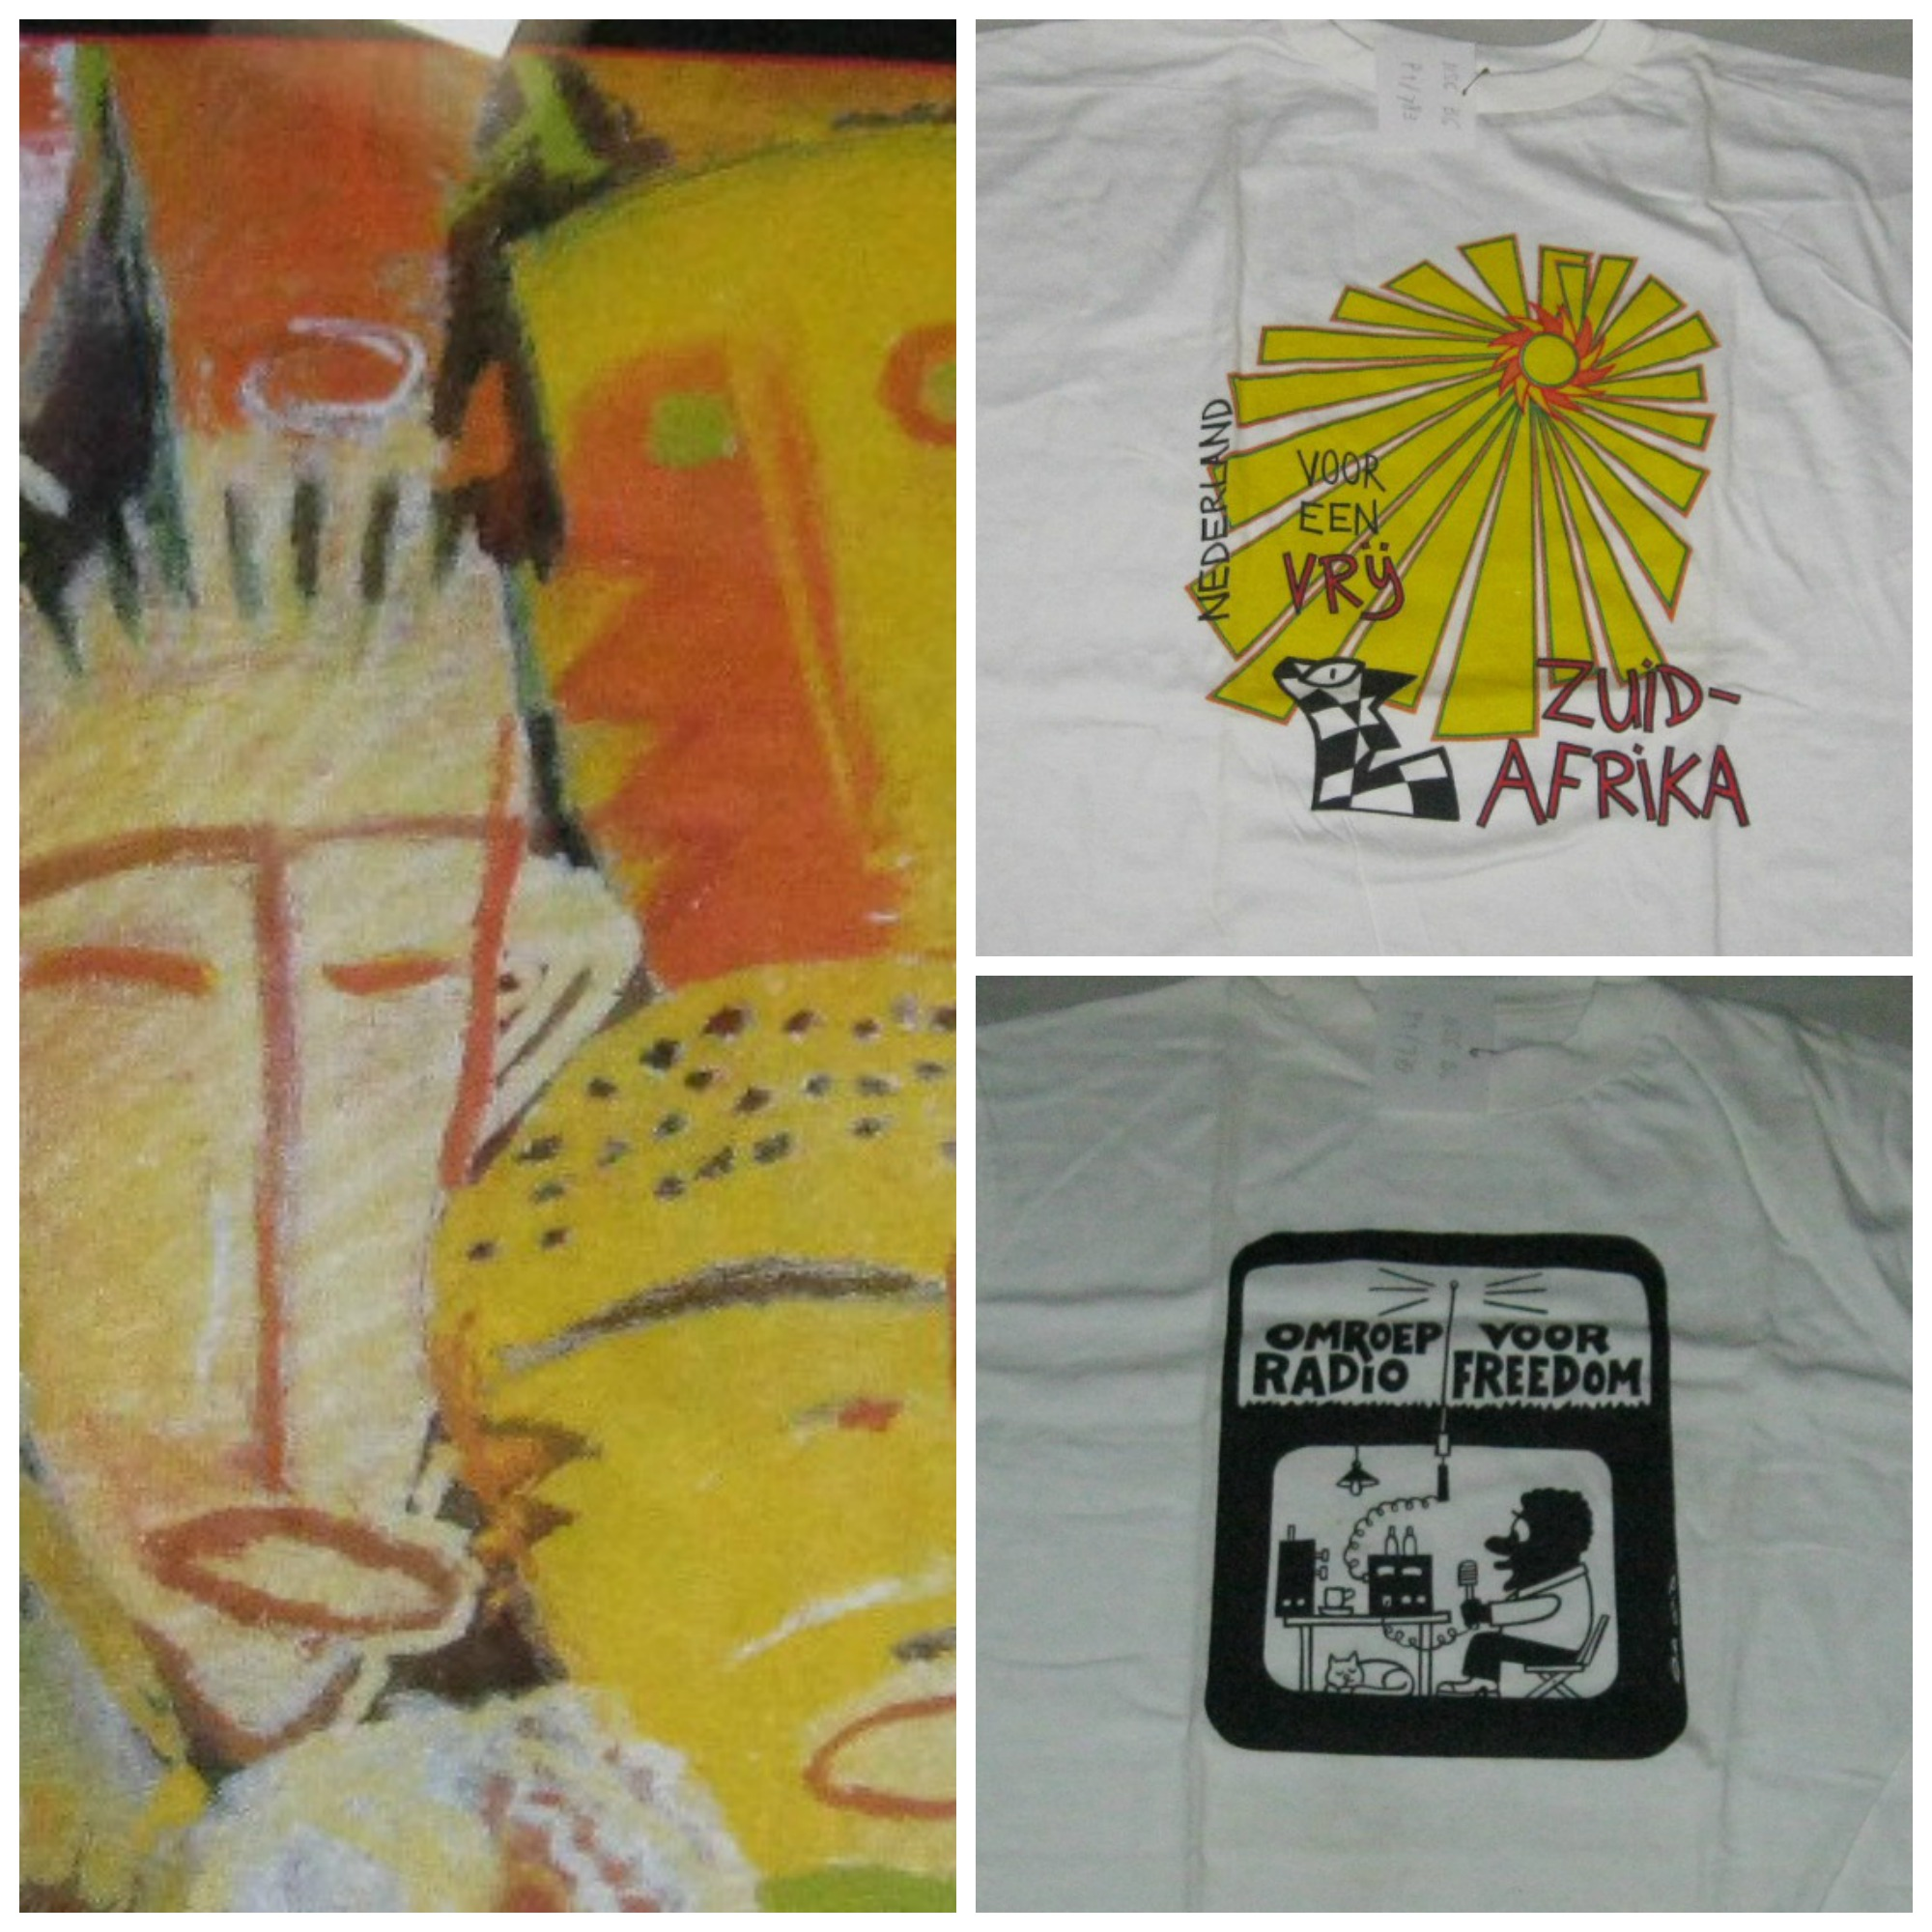 Collage of t-shirts from the IISH collection